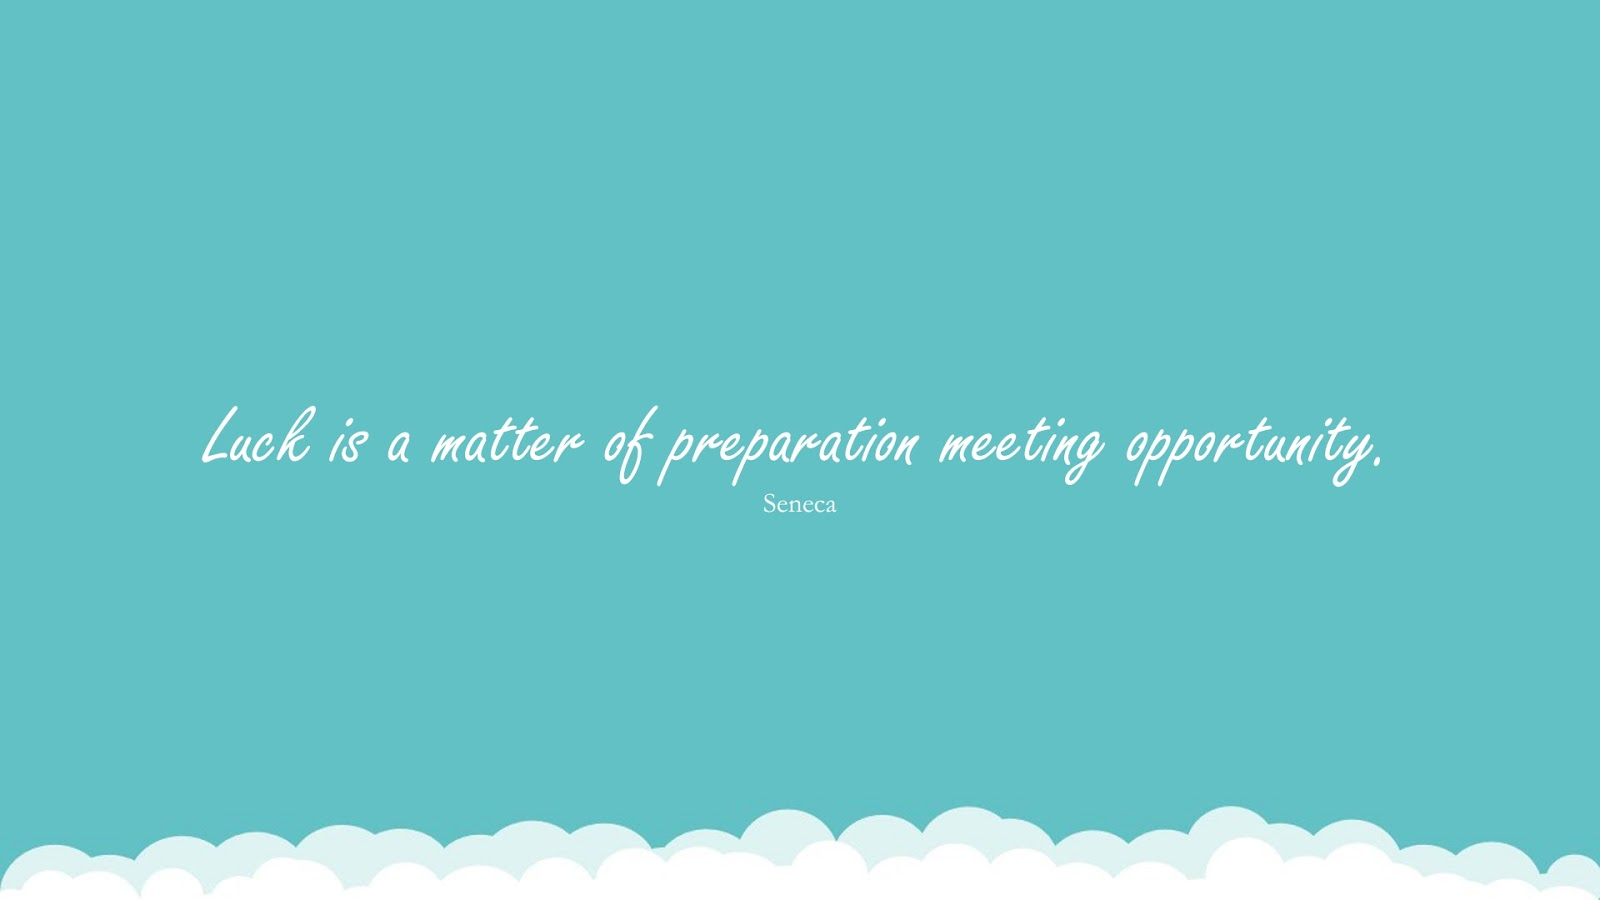 Luck is a matter of preparation meeting opportunity. (Seneca);  #HardWorkQuotes